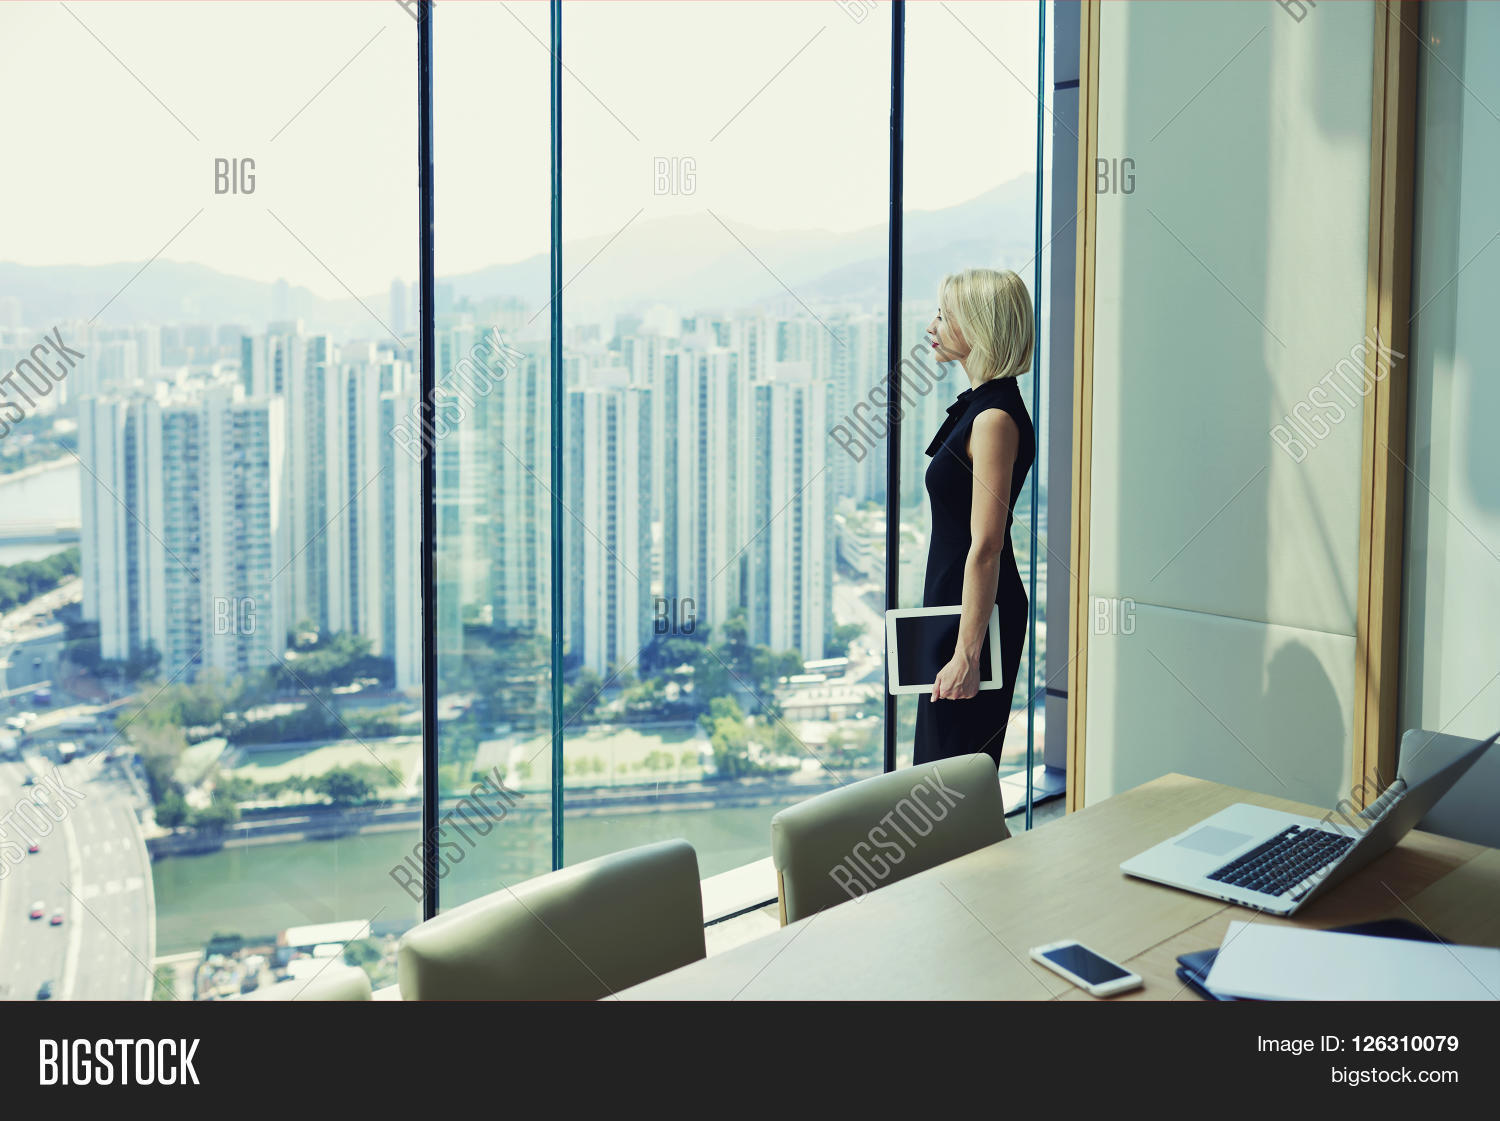 Blonde Woman Proud CEO Is Holding Touch Pad And Looking In Office Window  With Cityscape While